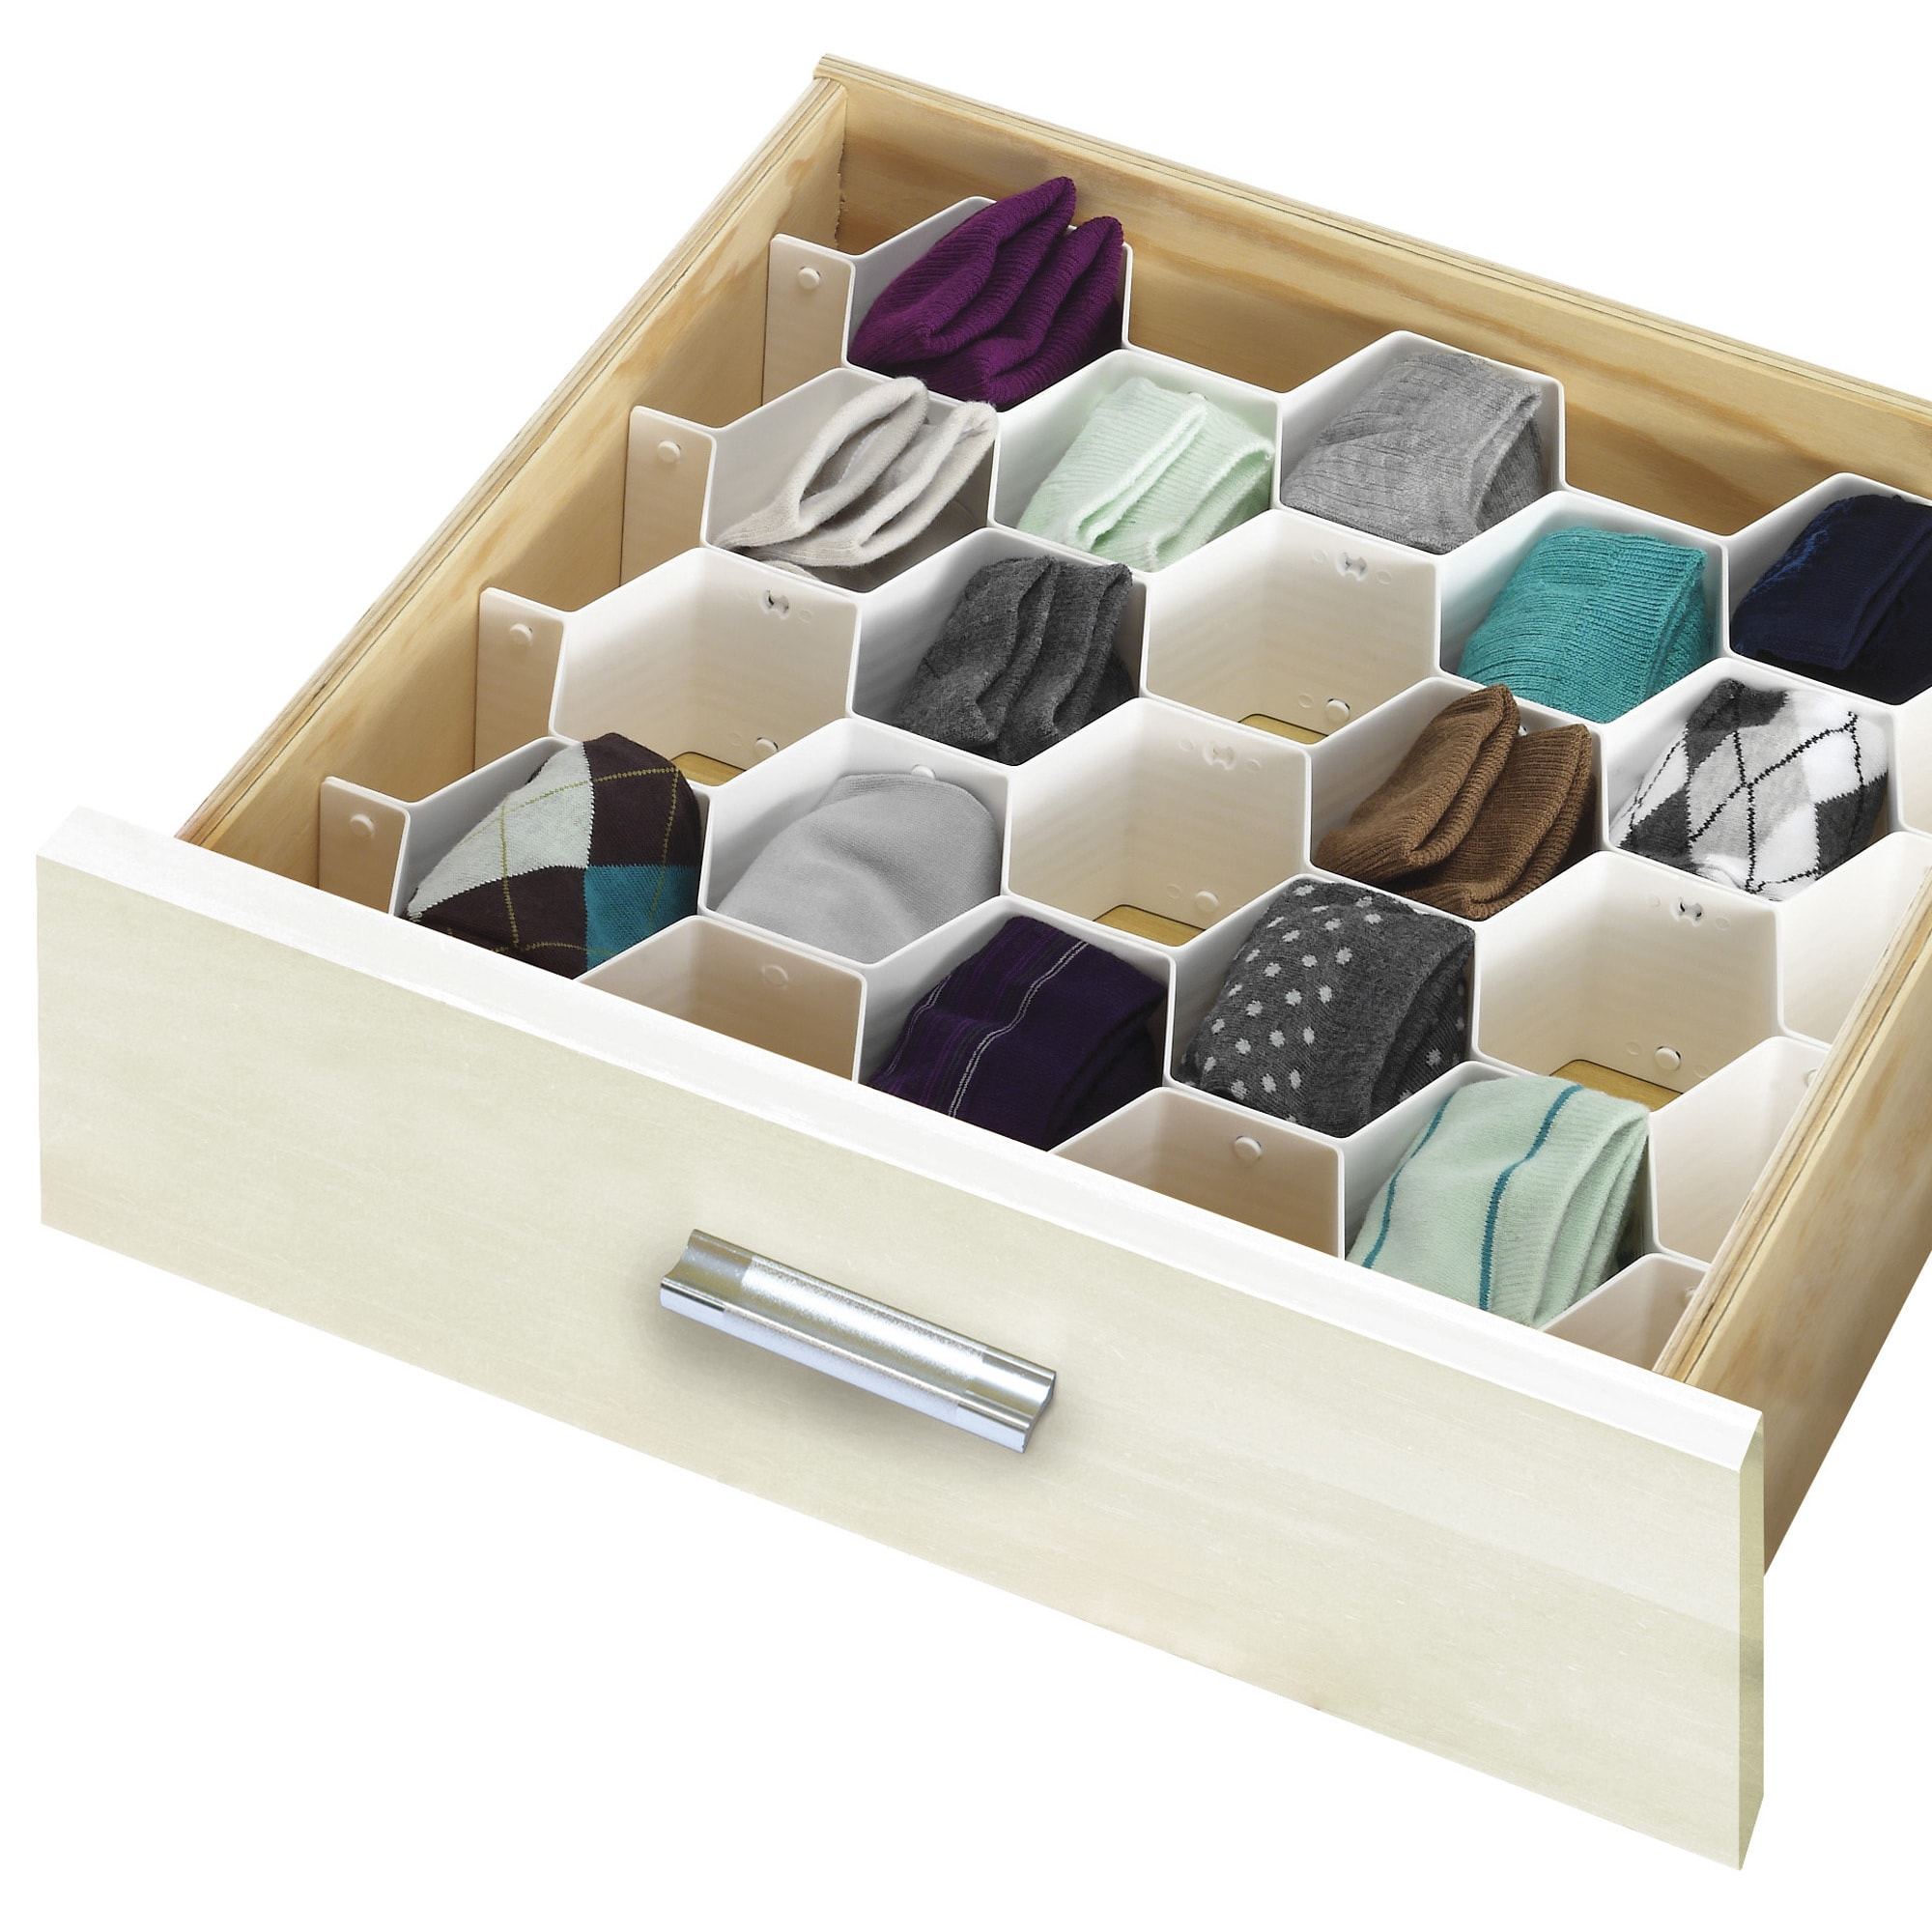 dresser drawer storage the boxes drawers organizers and s to organize here using